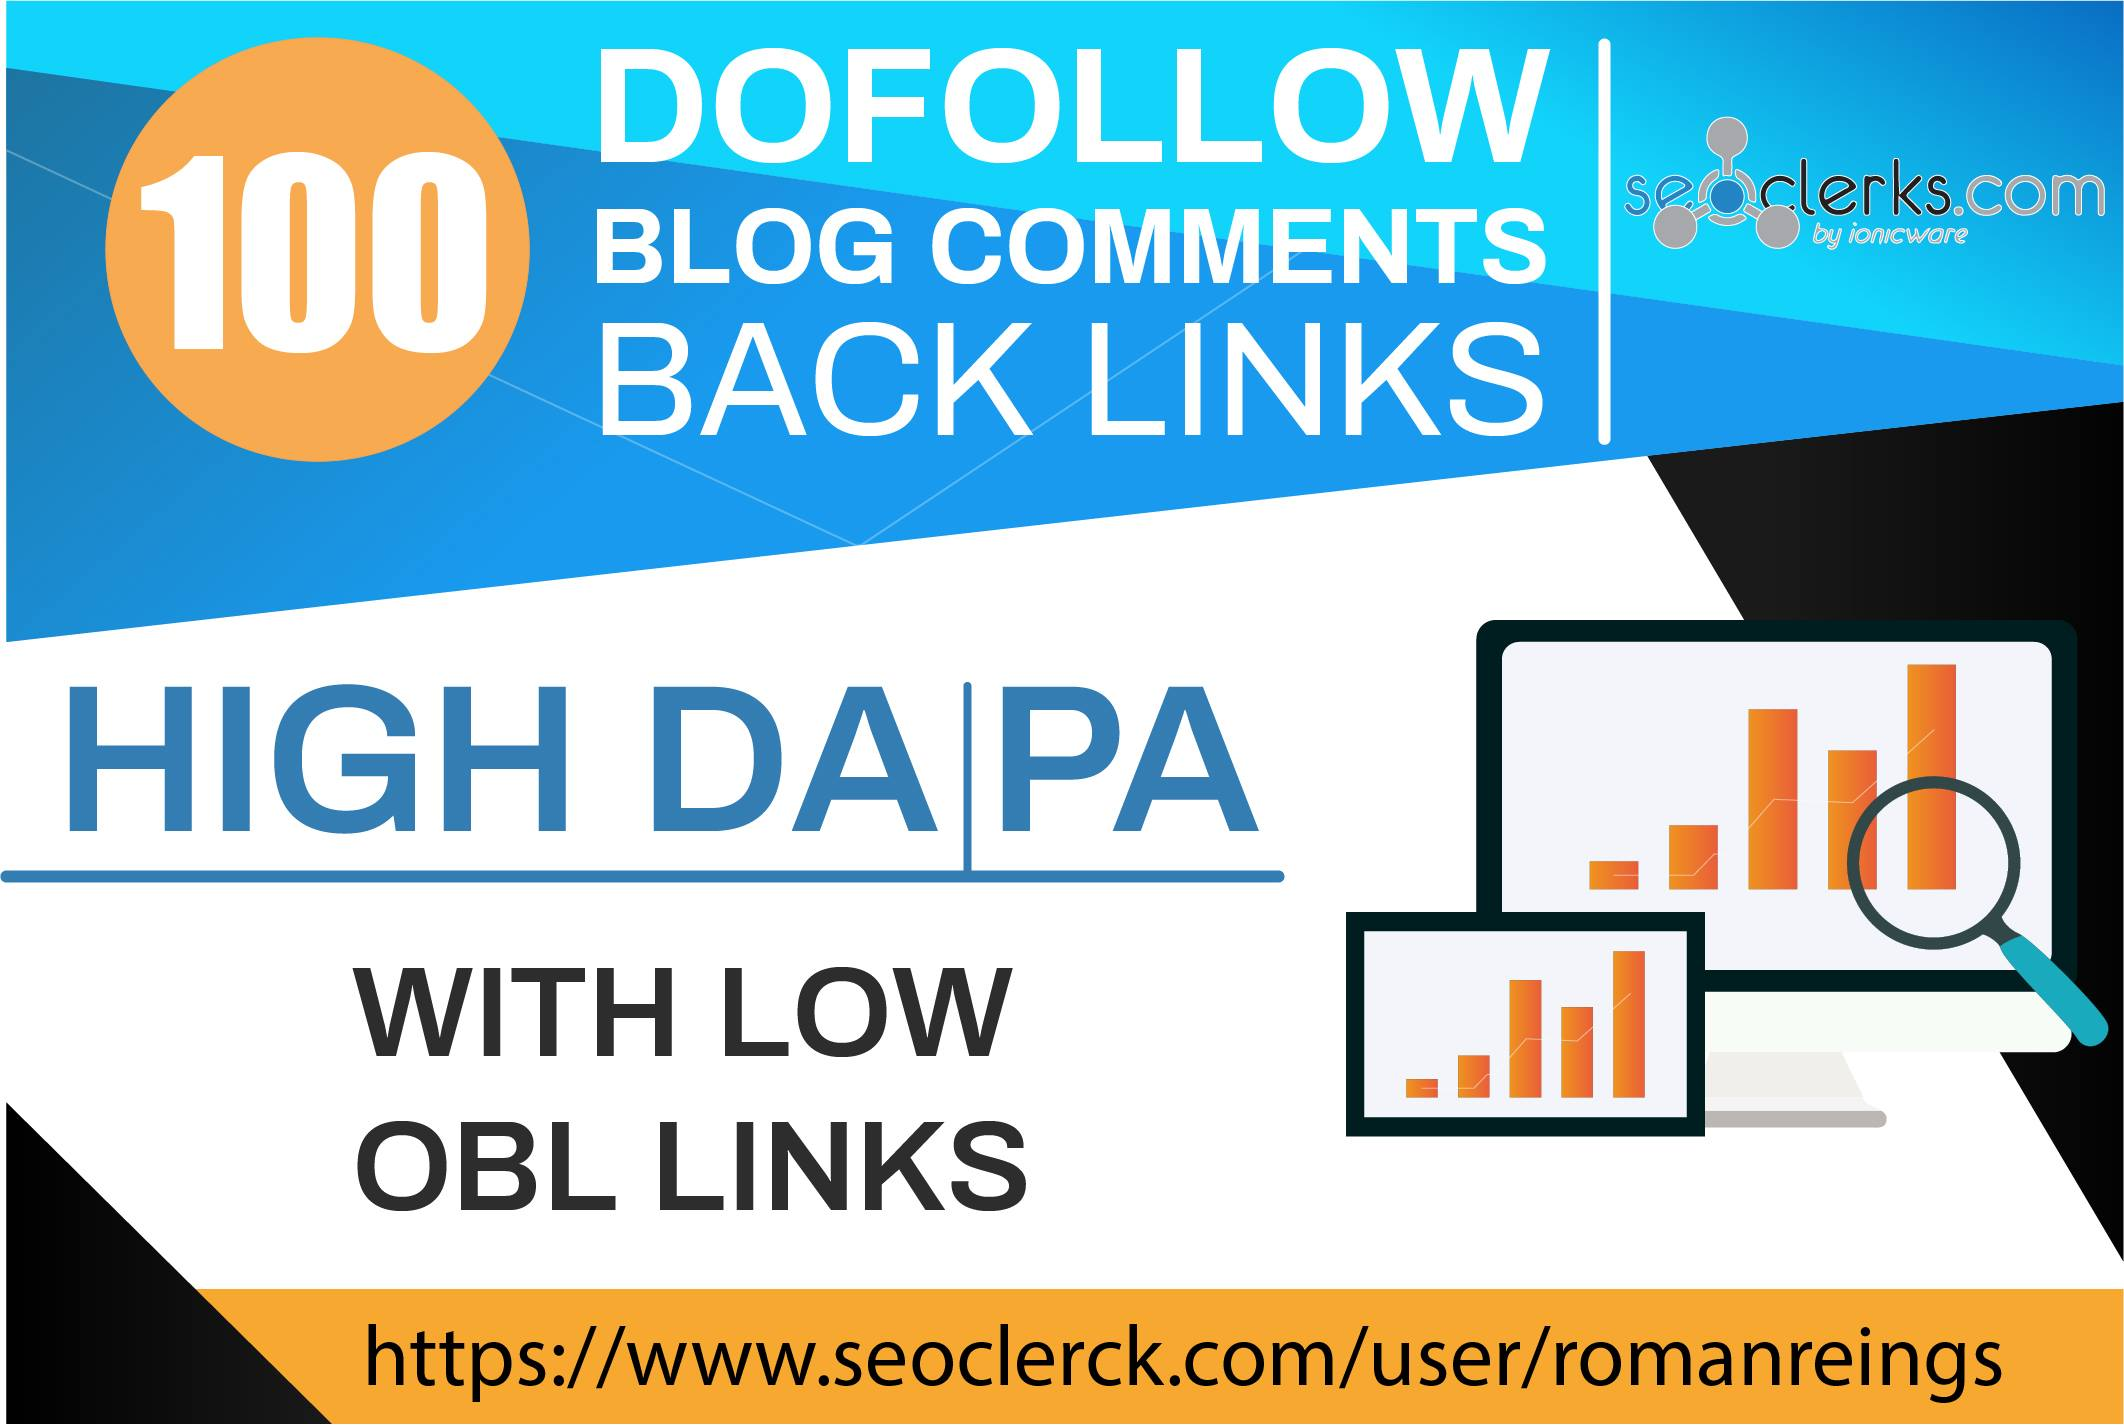 Do 100 blog comments on high dapa tf cf low obl